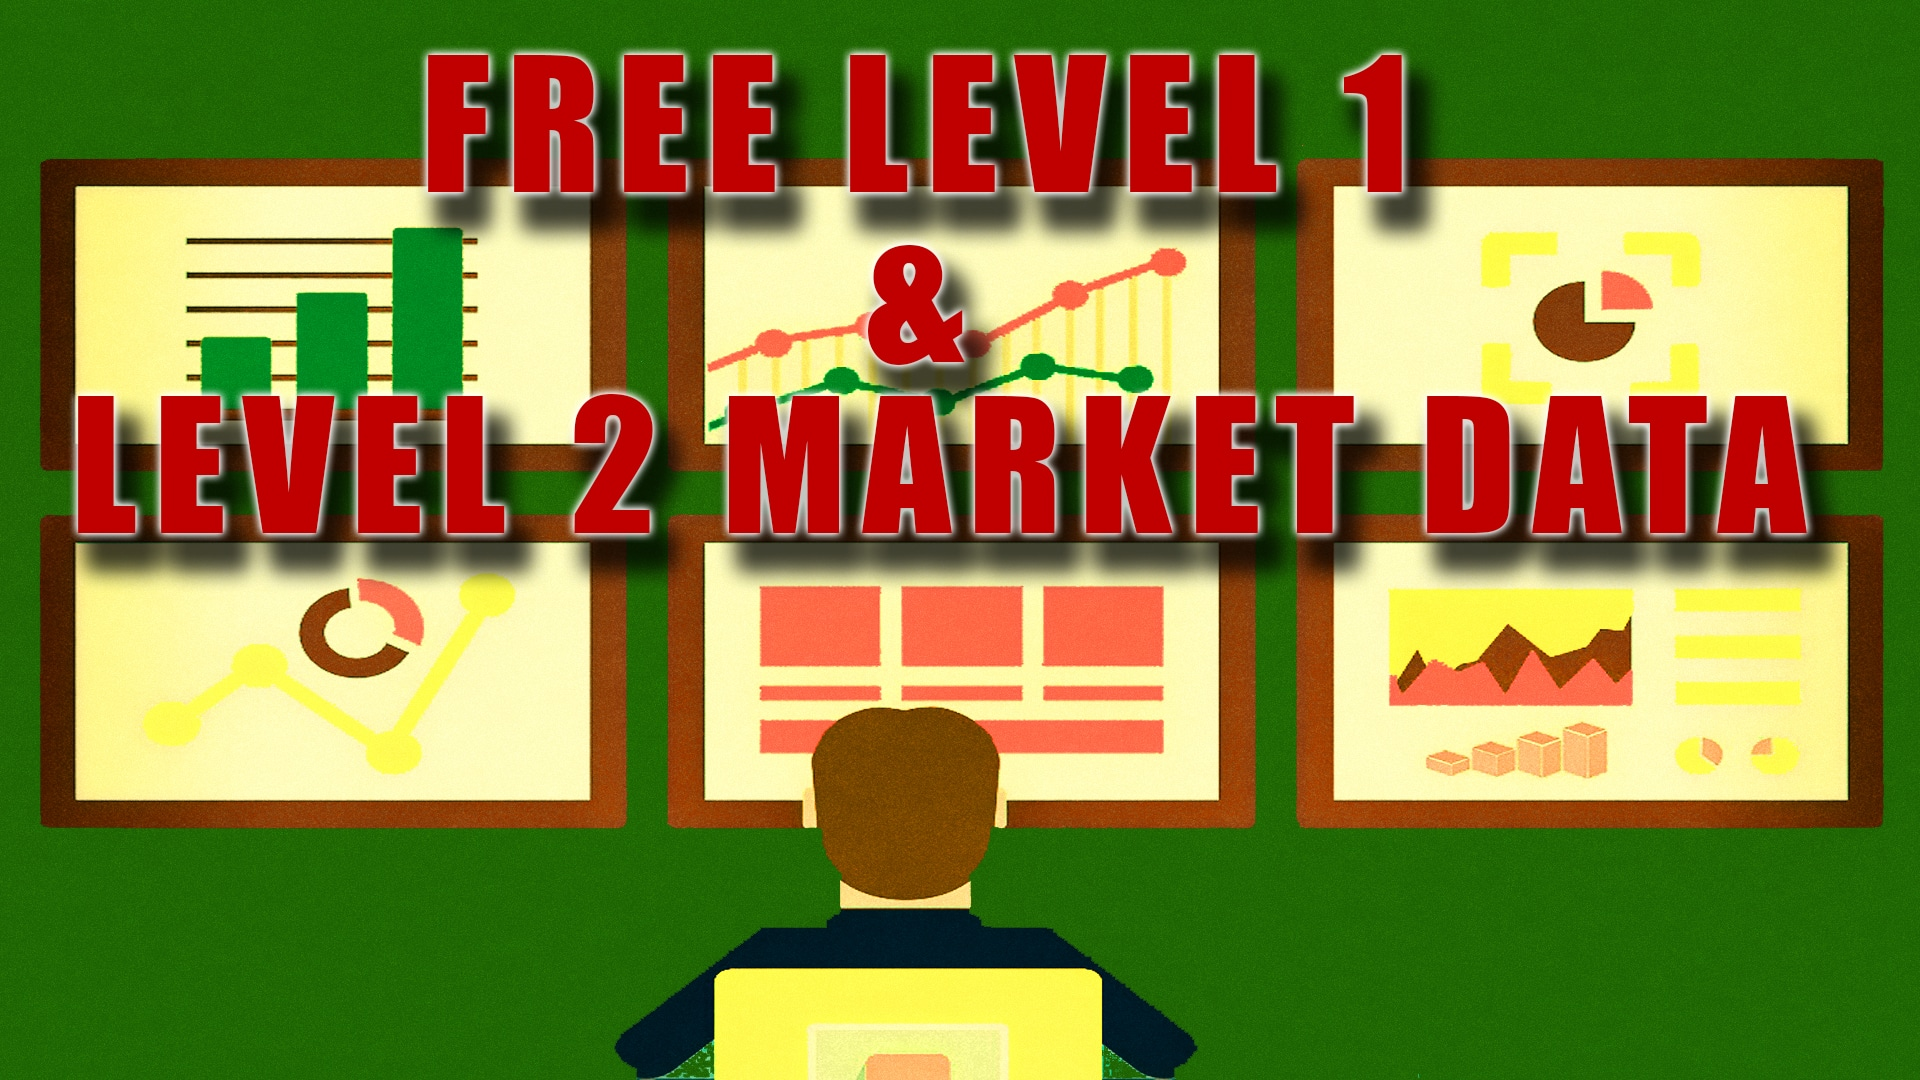 Thinkorswim - Free Level 1 & Level 2 Market Data for Penny